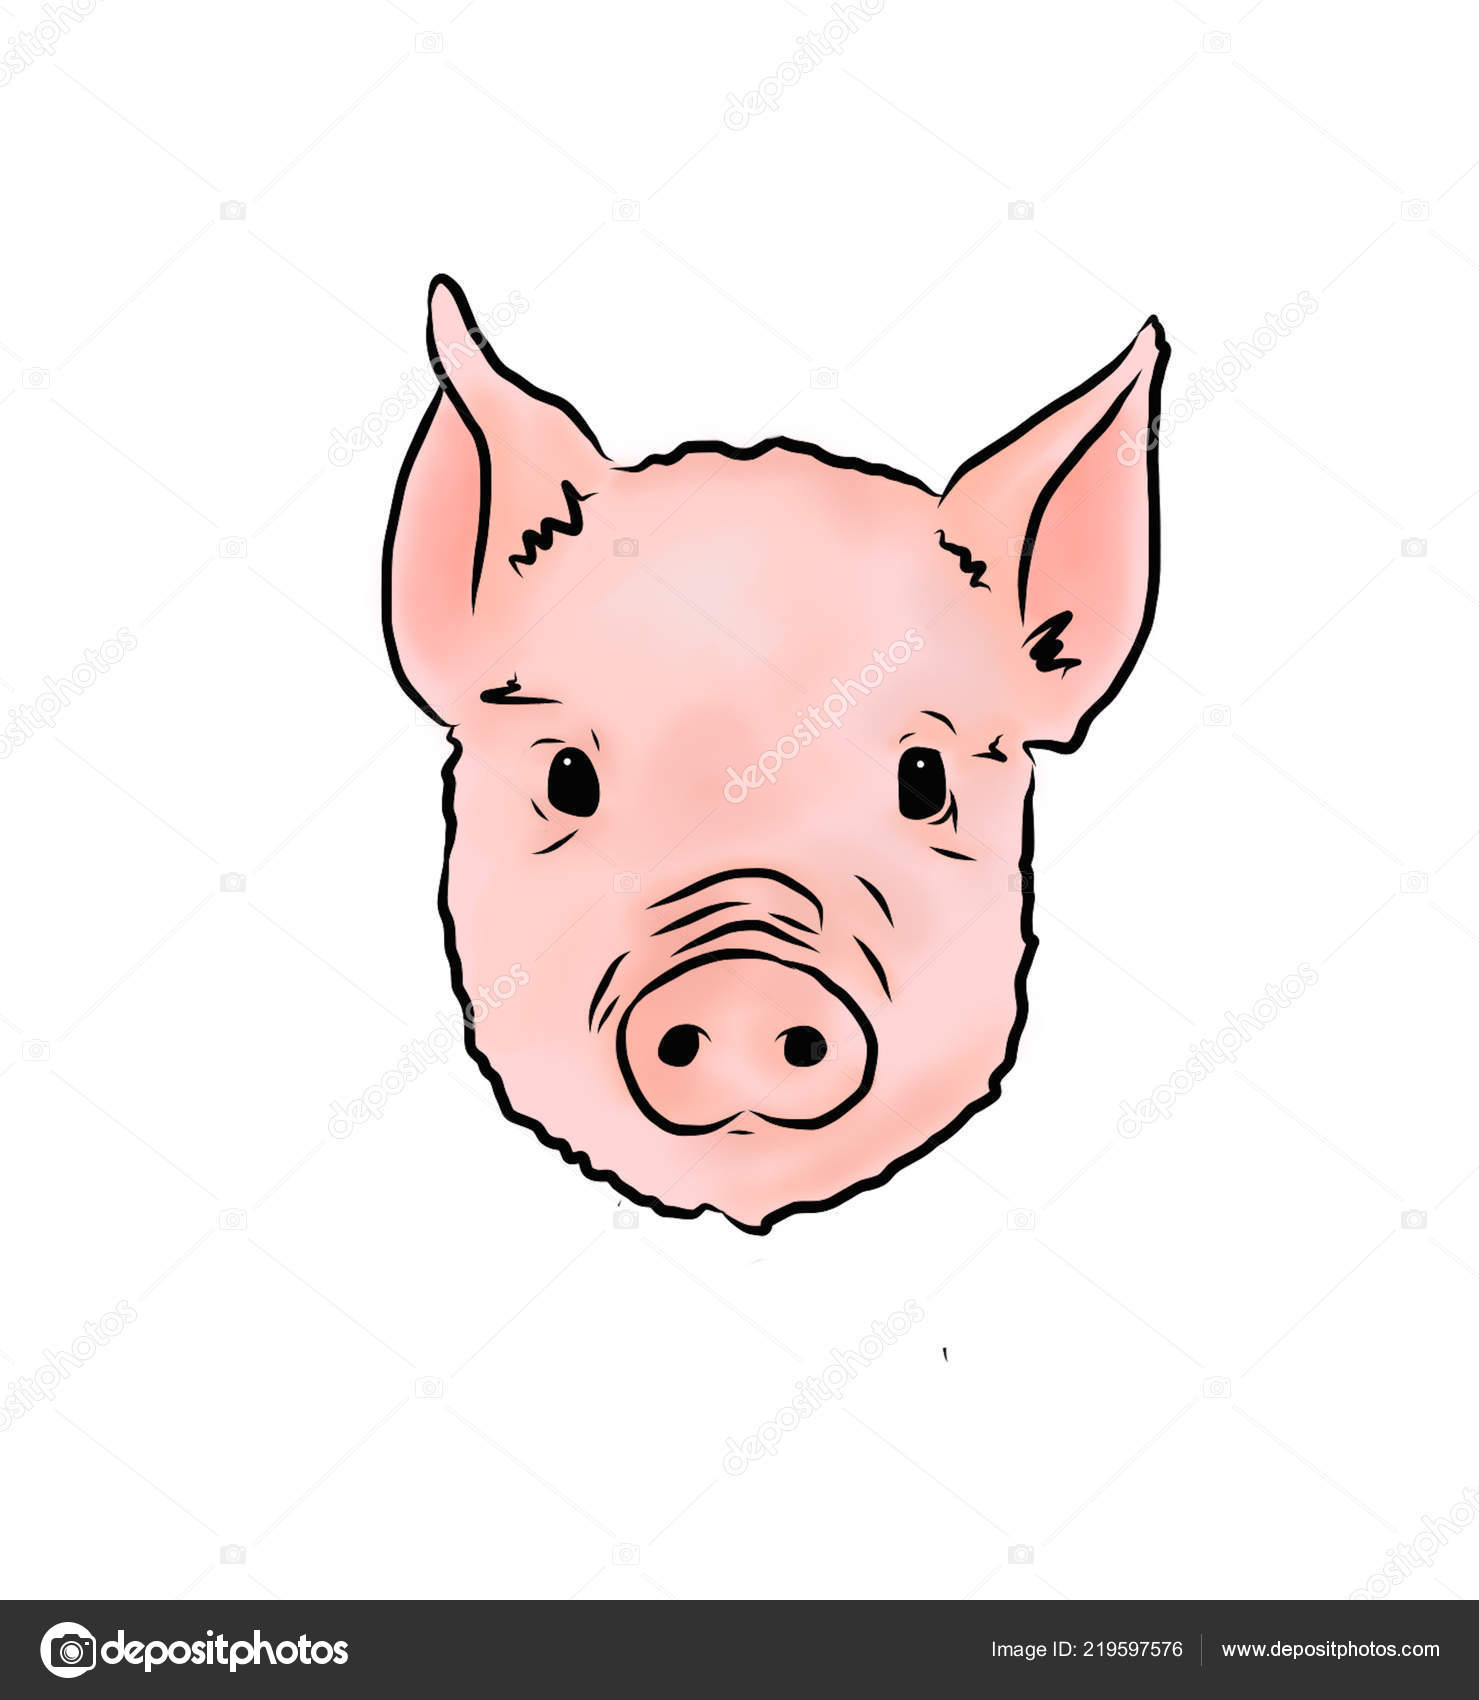 Cute Pig Face Illustration Vector Image By Dollygrey Vector Stock 219597576